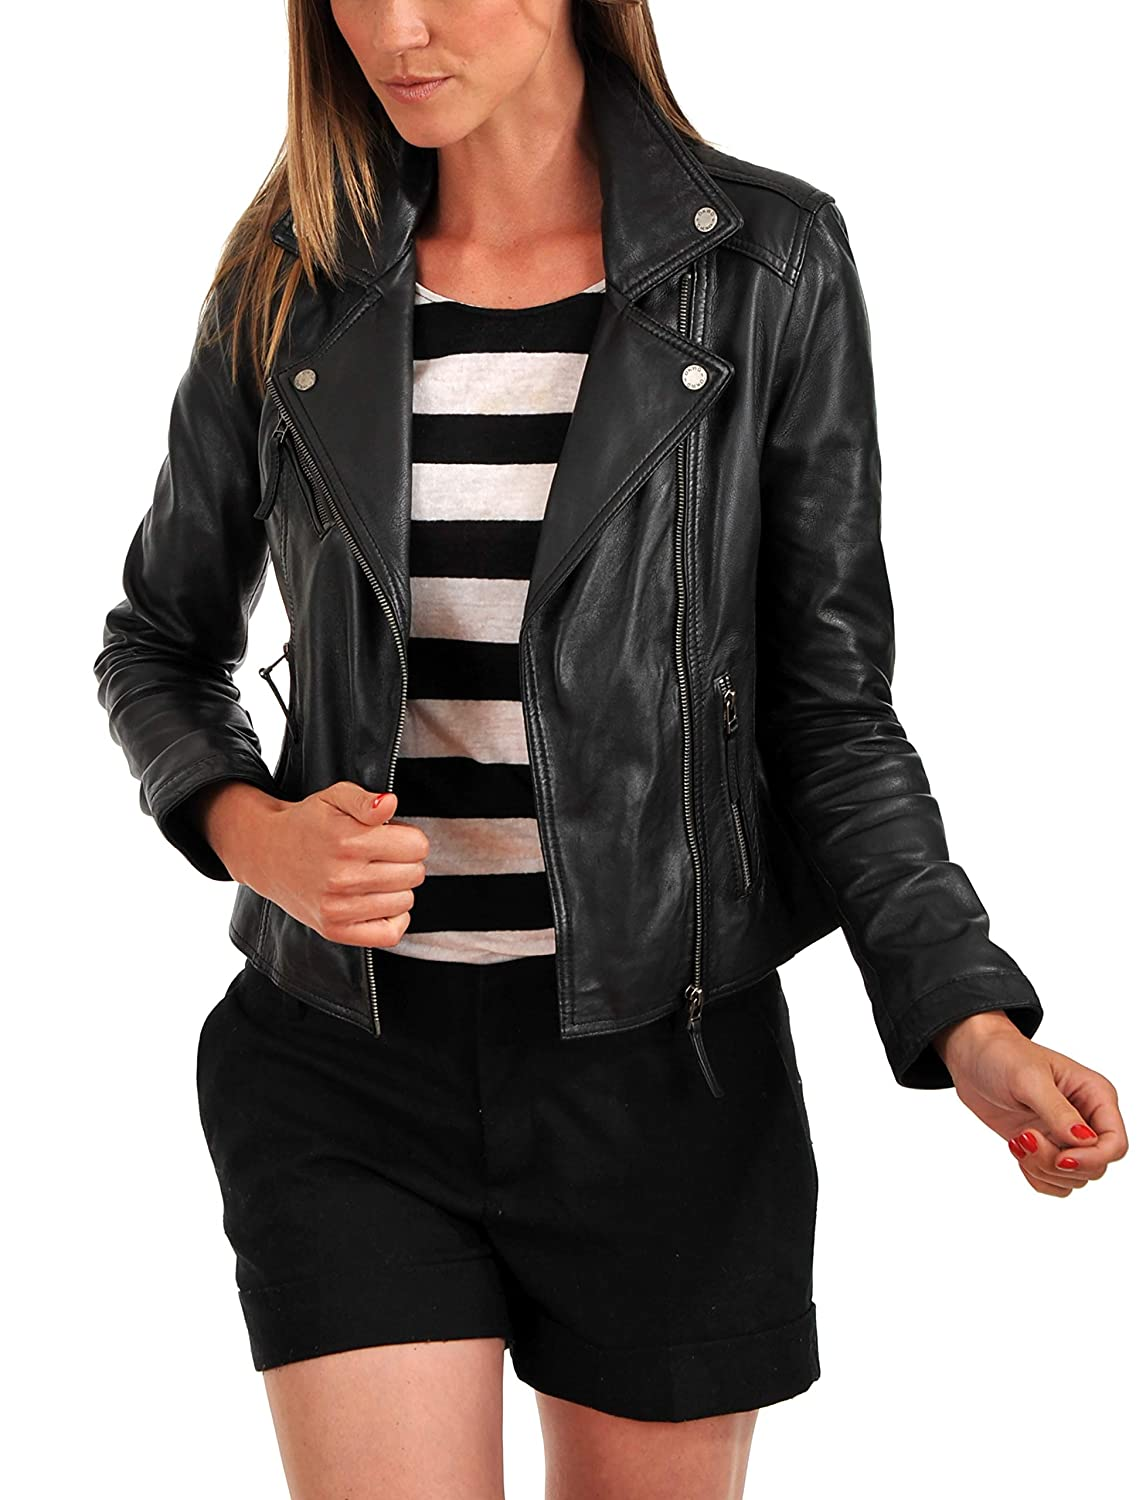 Black9fc DOLLY LAMB 100% Leather Jacket for Women  Slim Fit & Quilted  Moto, Bomber, Biker Winter Casual Wear